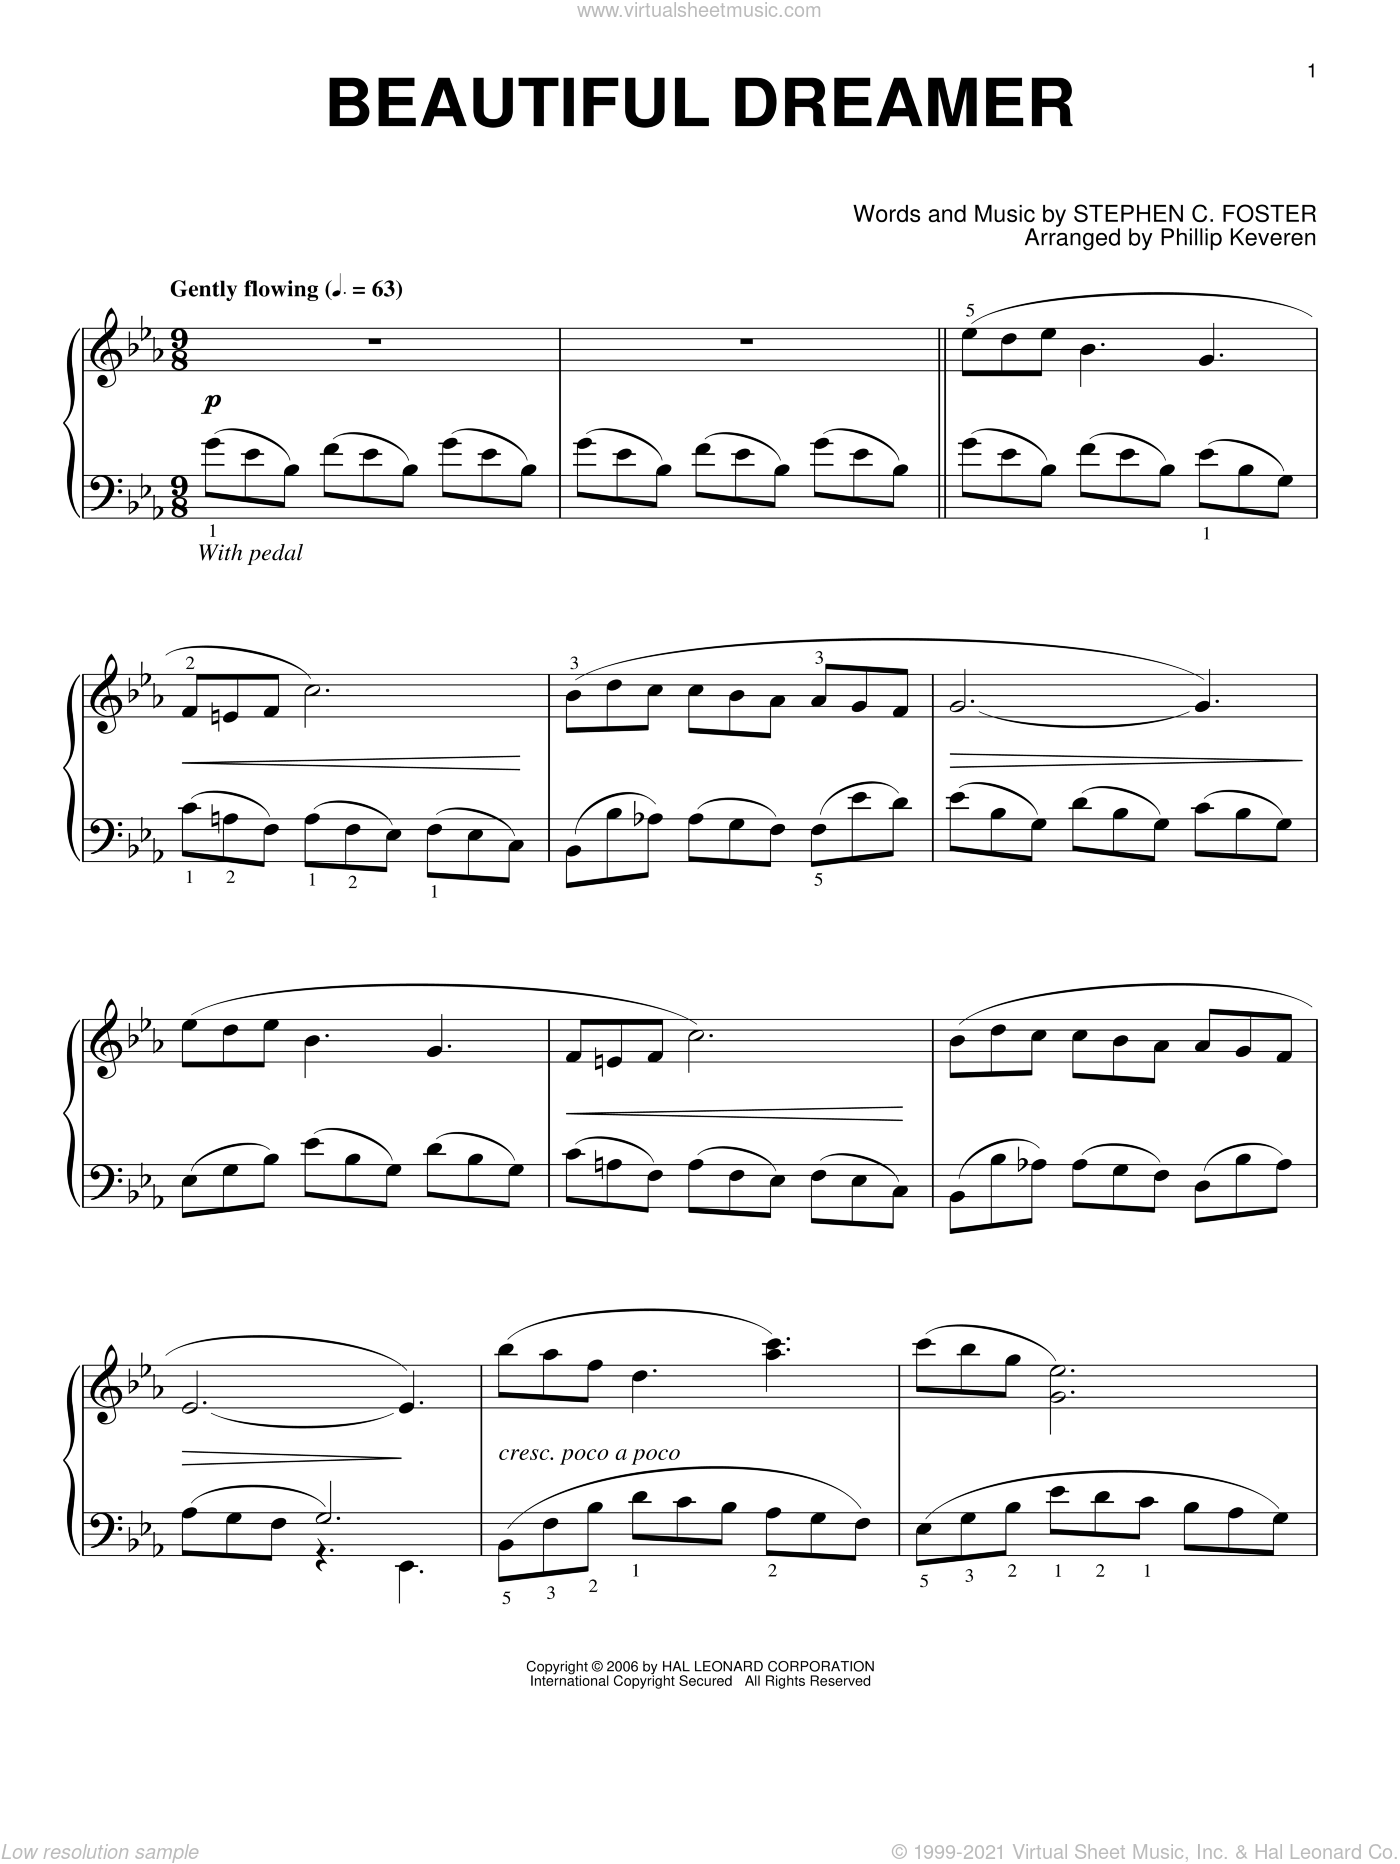 Beautiful Dreamer sheet music for piano solo by Stephen Foster and Phillip Keveren, intermediate skill level